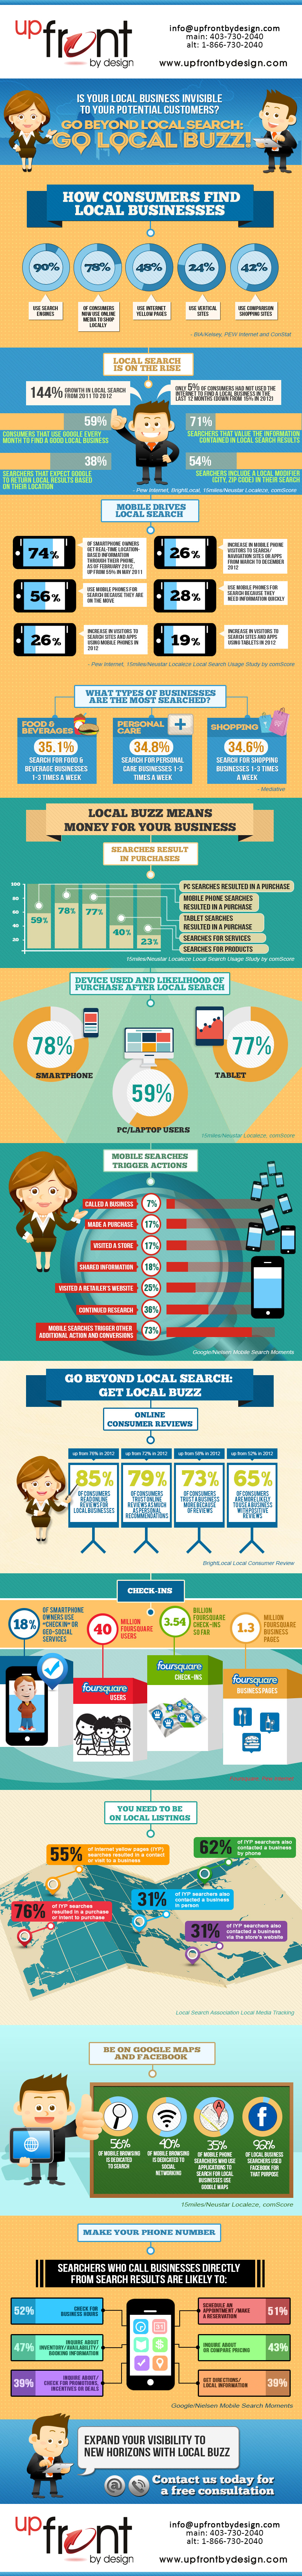 UpFrontByDesign.com-Local-Buzz-Infographic-2014